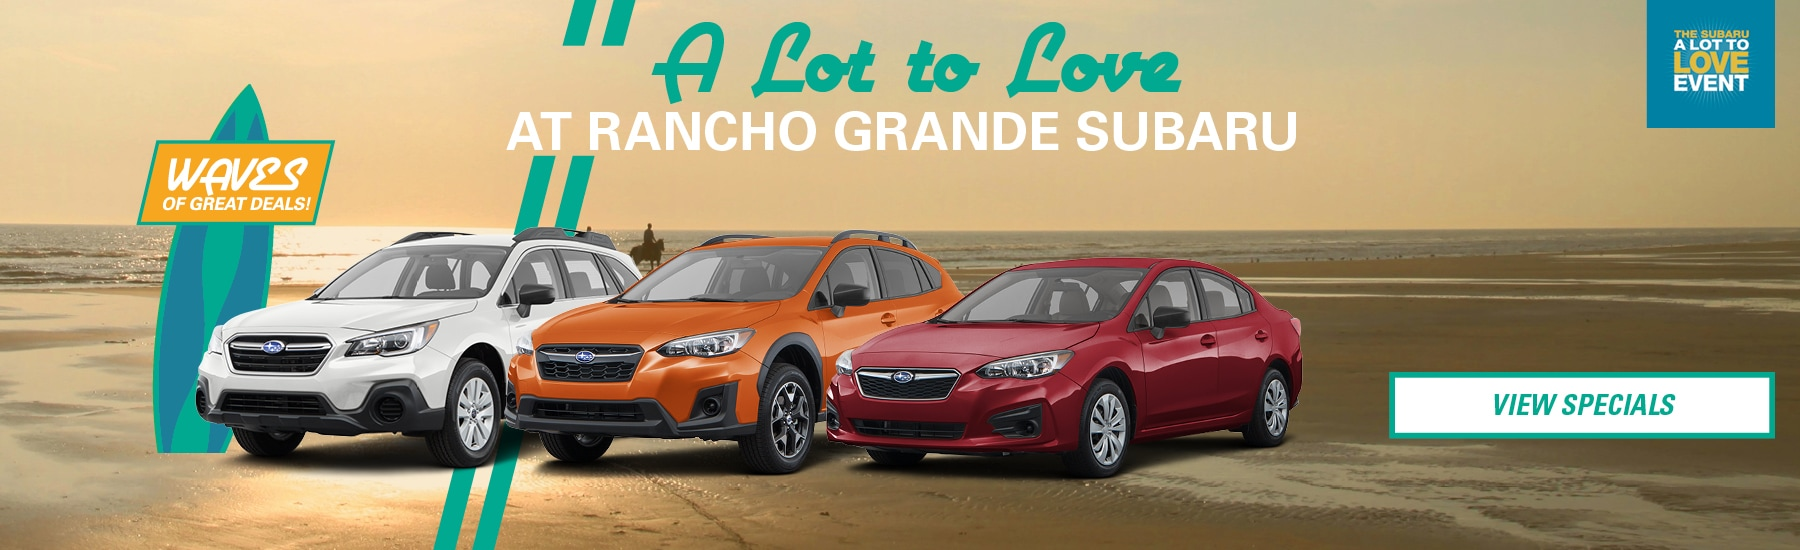 rancho grande subaru in san luis obispo slo new used subaru car dealer near grover beach. Black Bedroom Furniture Sets. Home Design Ideas